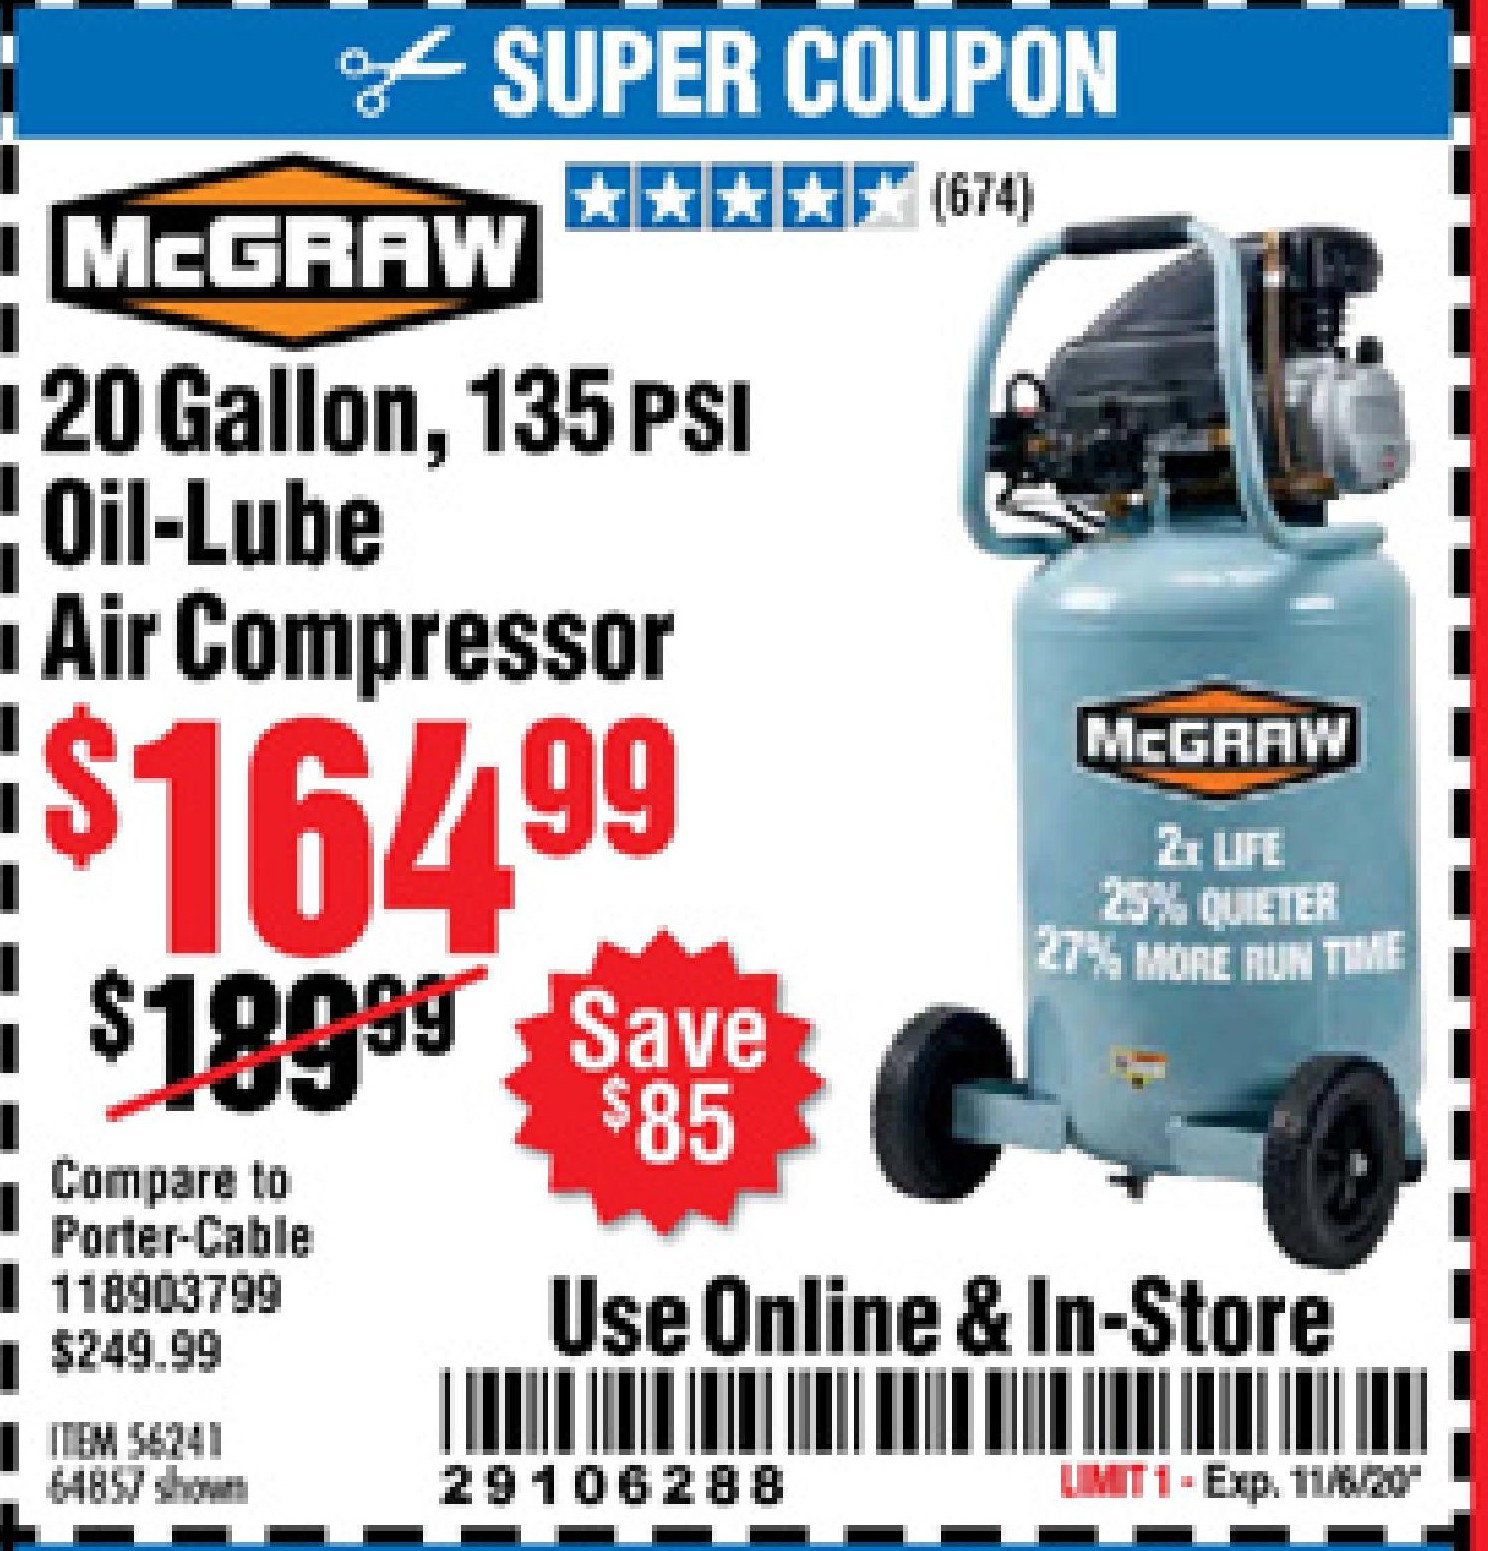 Harbor Freight 20 GALLON, 135 PSI OIL-LUBE AIR COMPRESSOR coupon